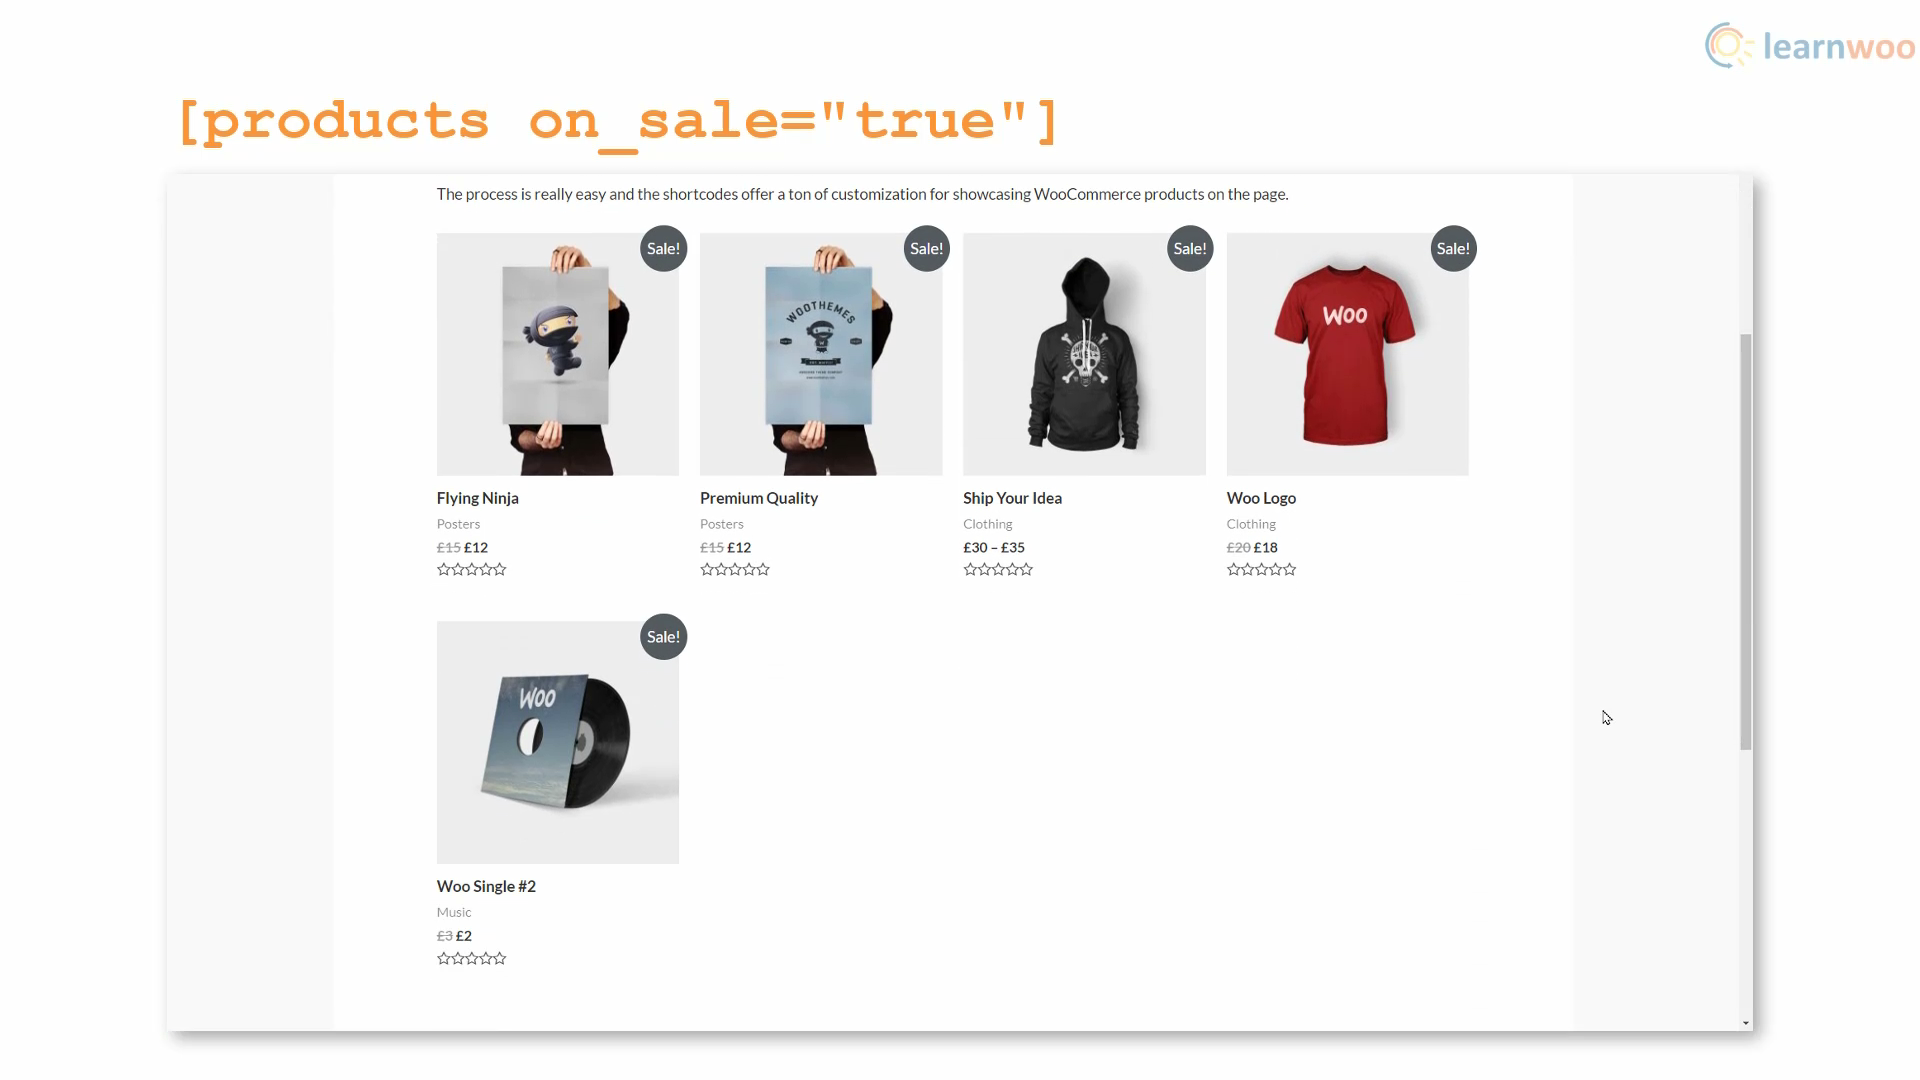 on sale shortcode